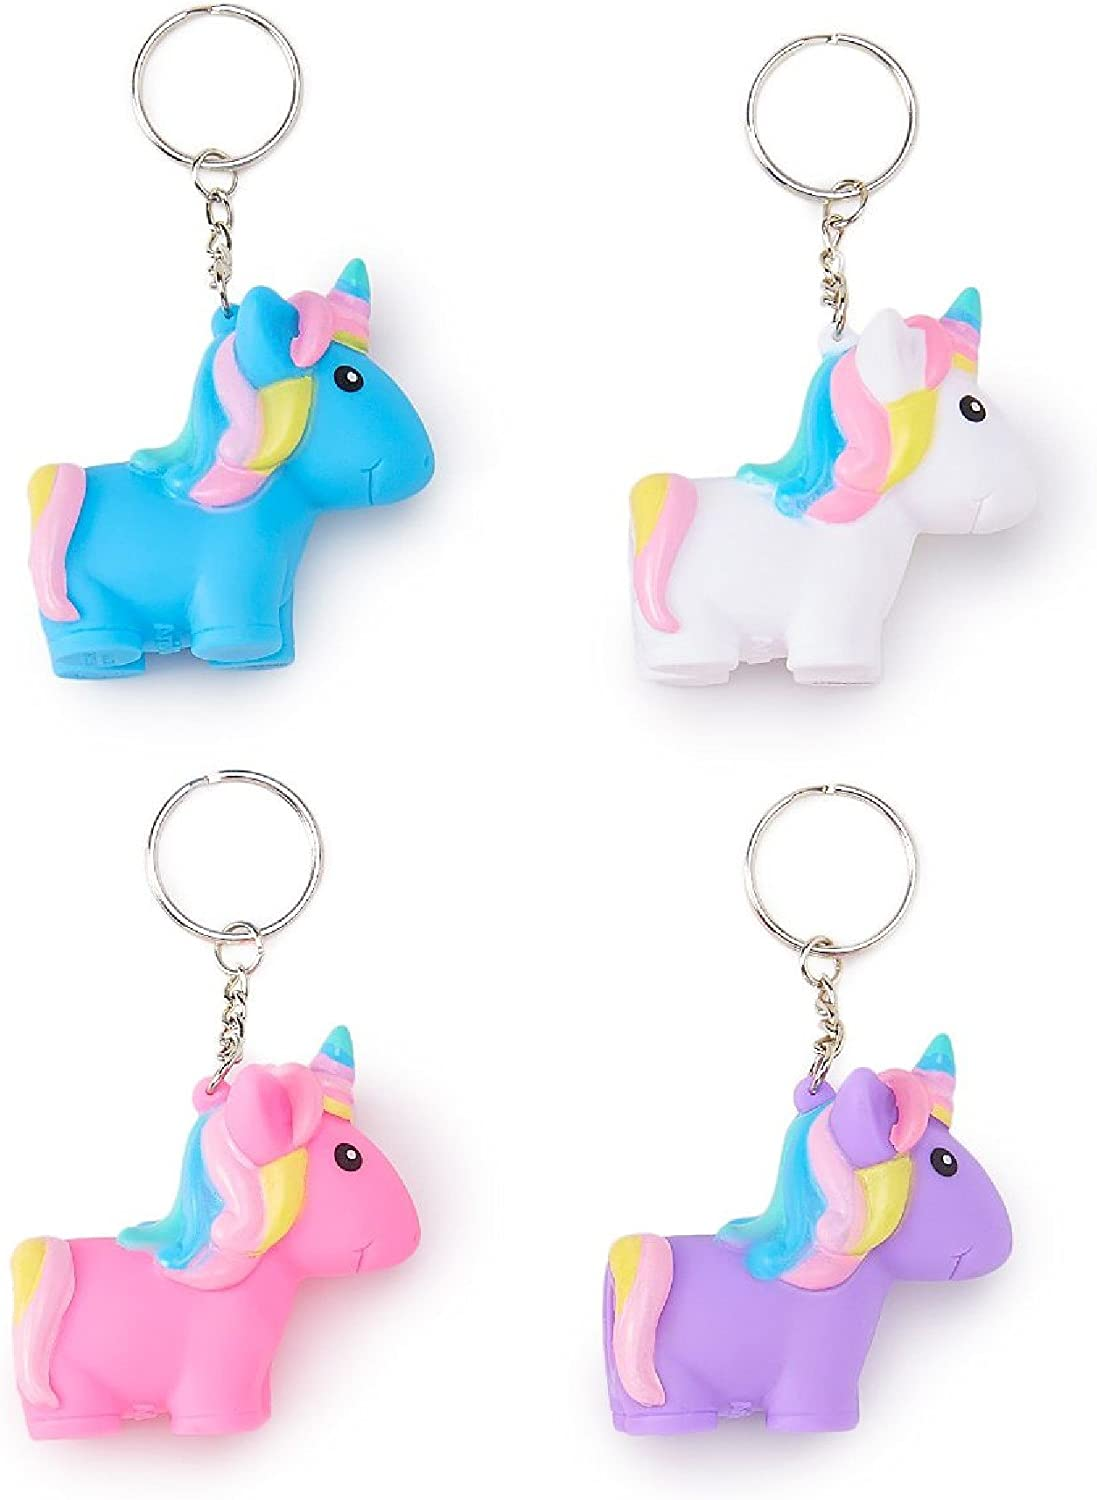 NOVELTY SET OF 4 UNICORN SQUEEZE AND POOP KEYRING KEY CHAIN PARTY BAG GIFT